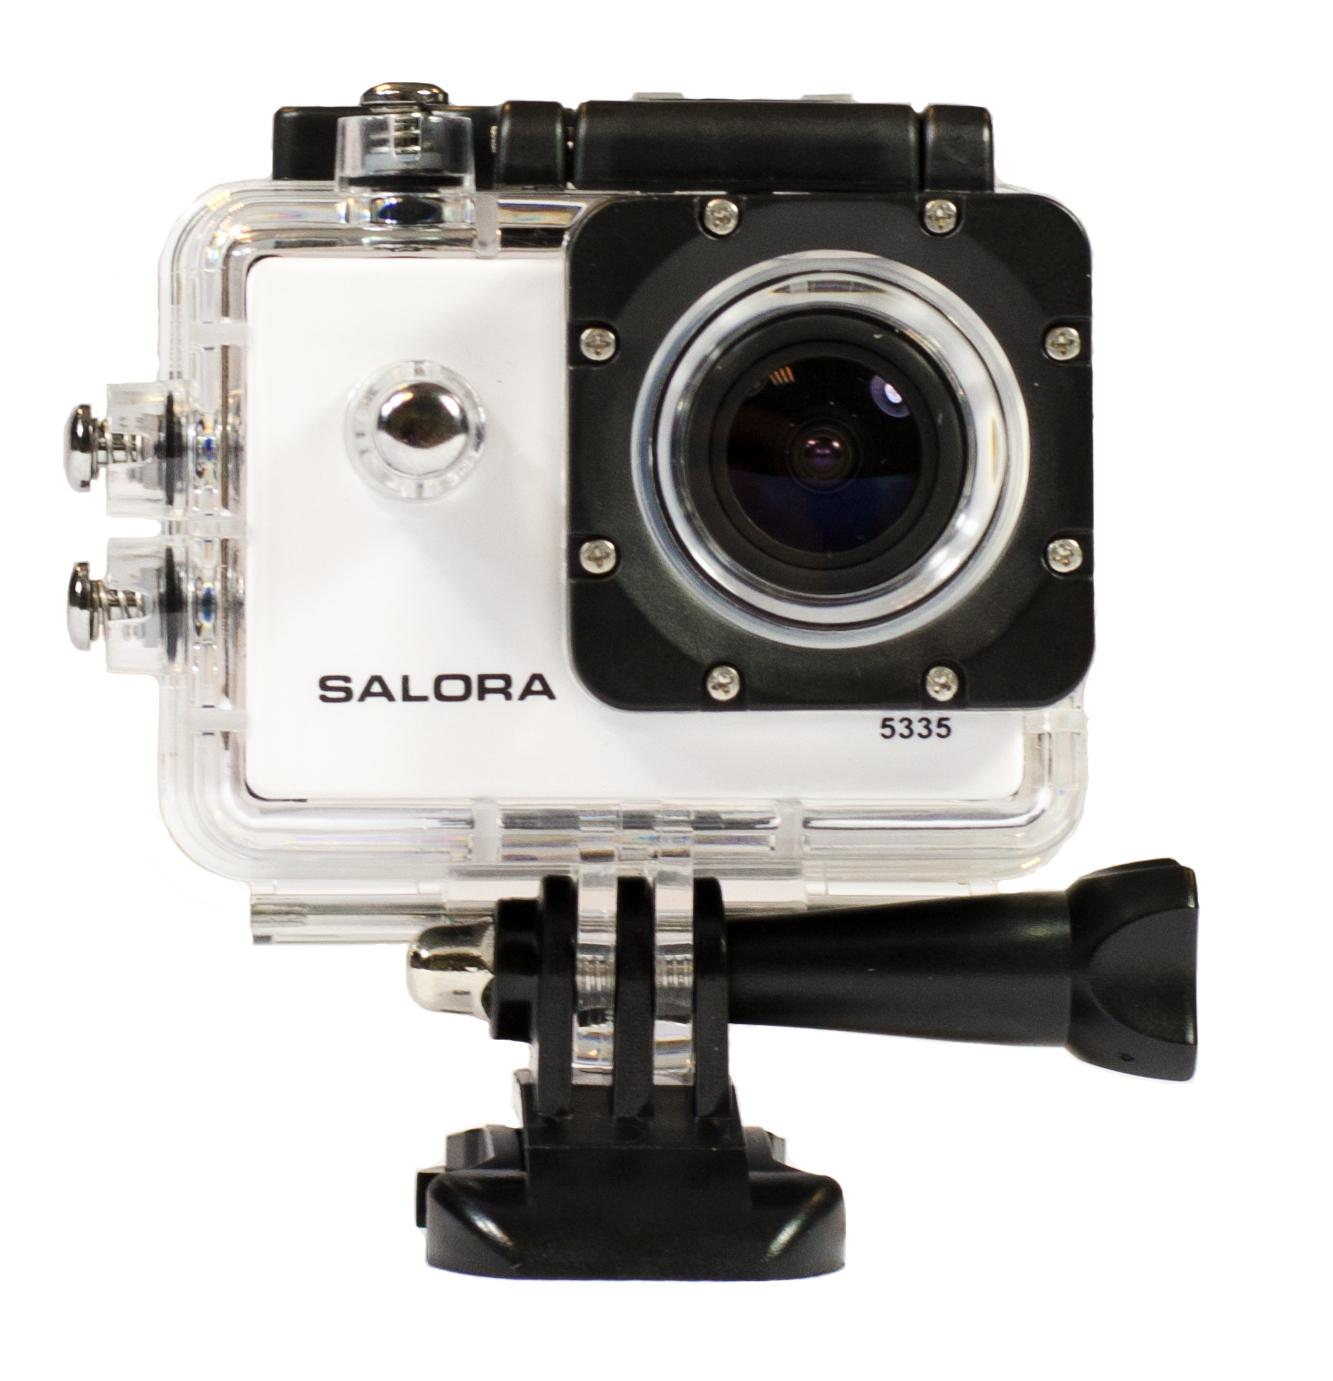 PSC5335FWD Action camera